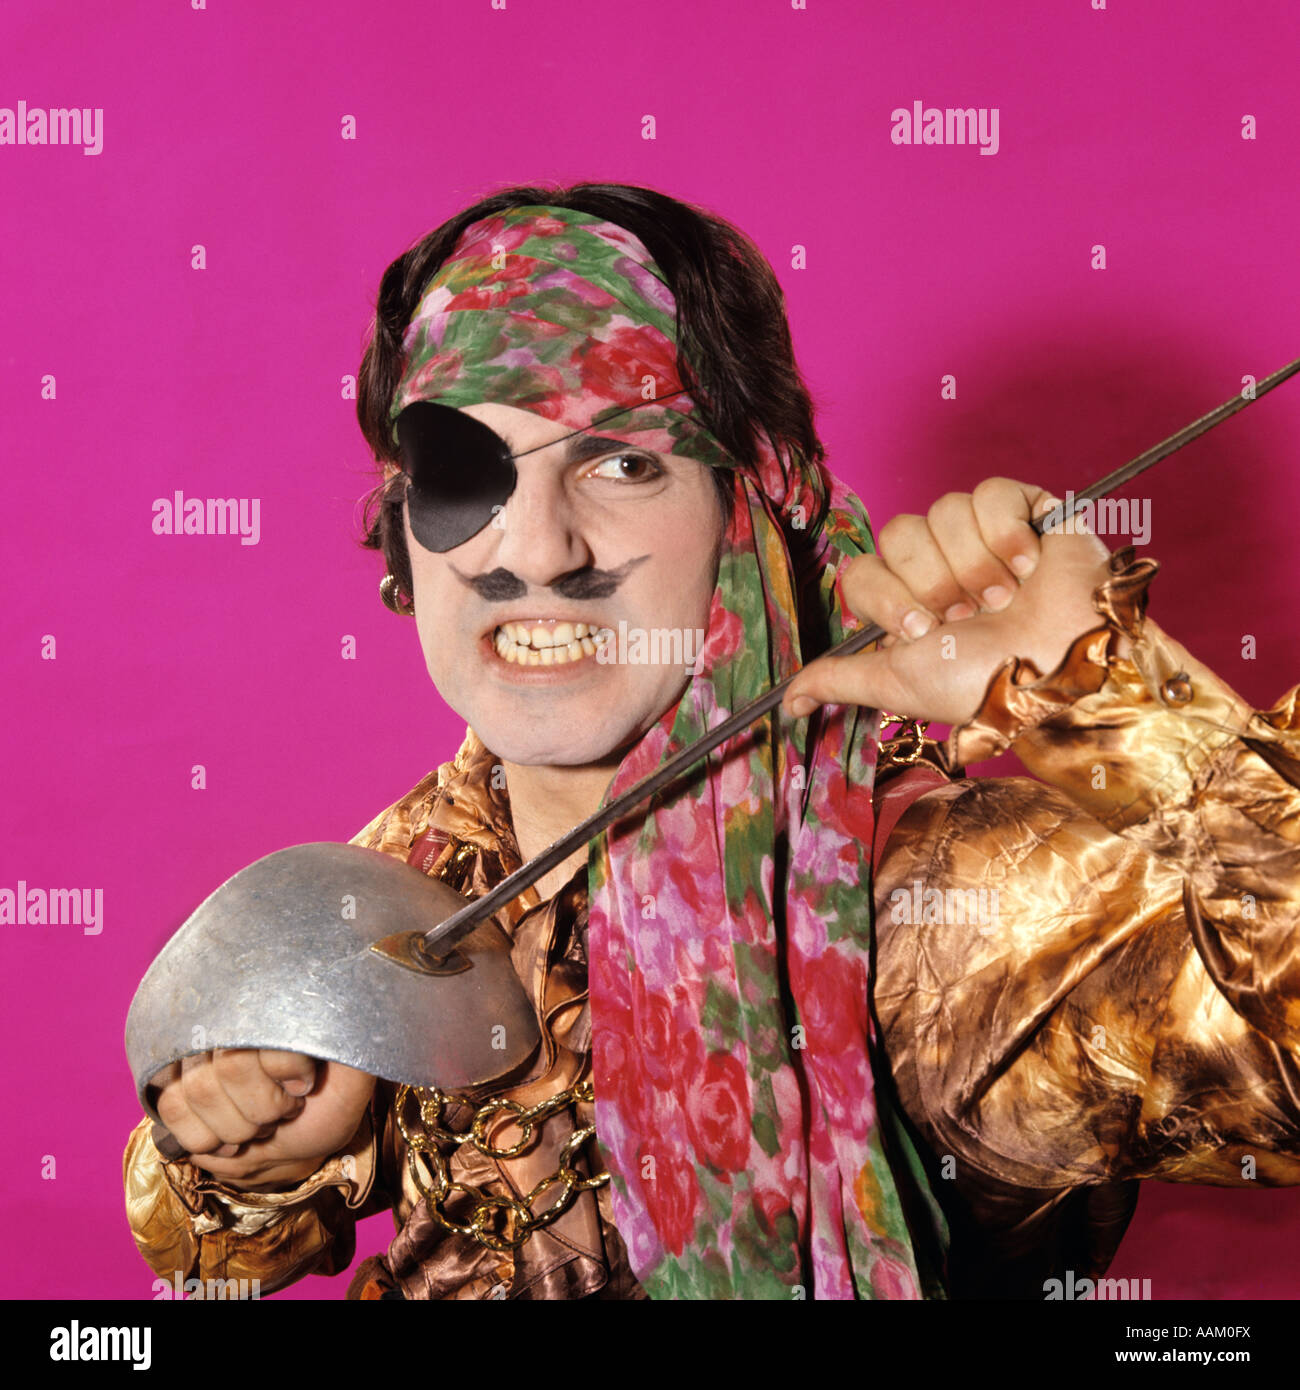 1970s CHARACTER MAN IN PIRATE COSTUME HOLDING A SWORD FUNNY FACE EXPRESSION MOUSTACHE GRITTING TEETH - Stock Image